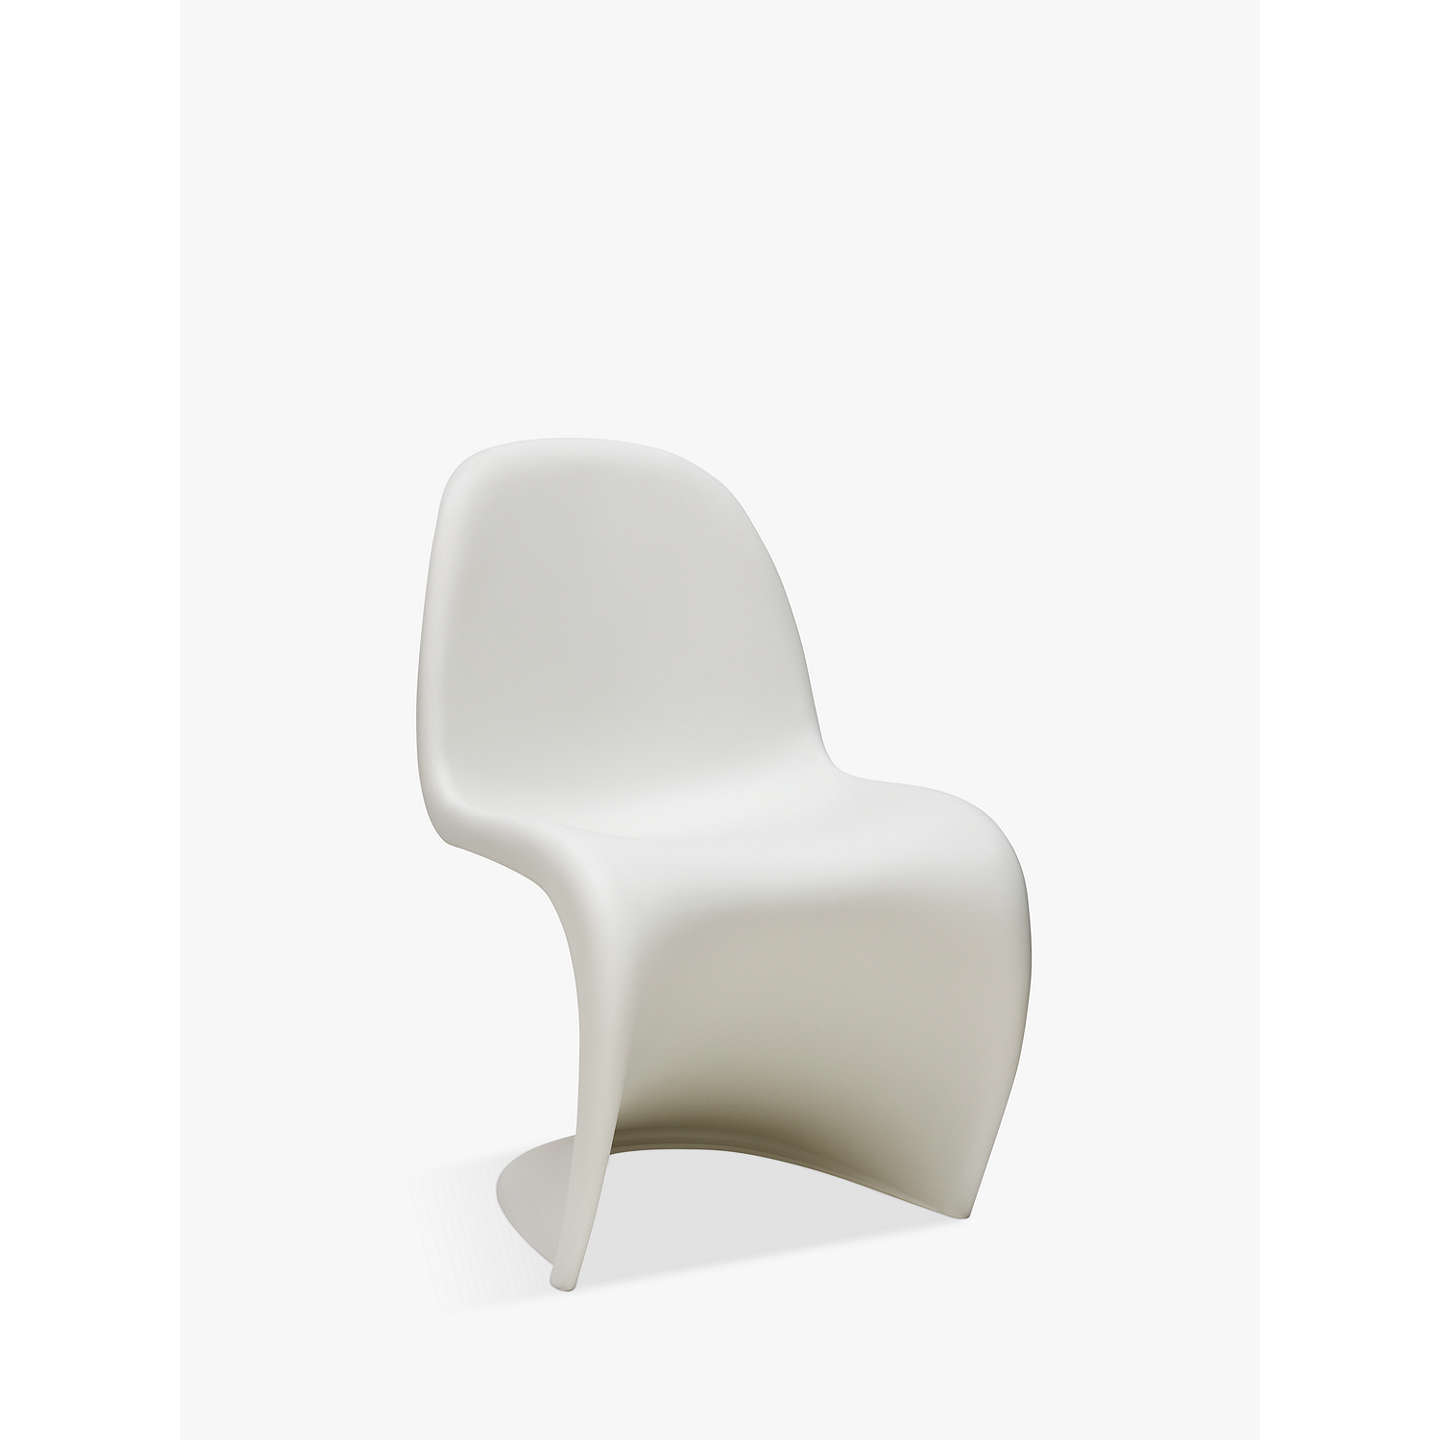 vitra panton s chair at john lewis. Black Bedroom Furniture Sets. Home Design Ideas